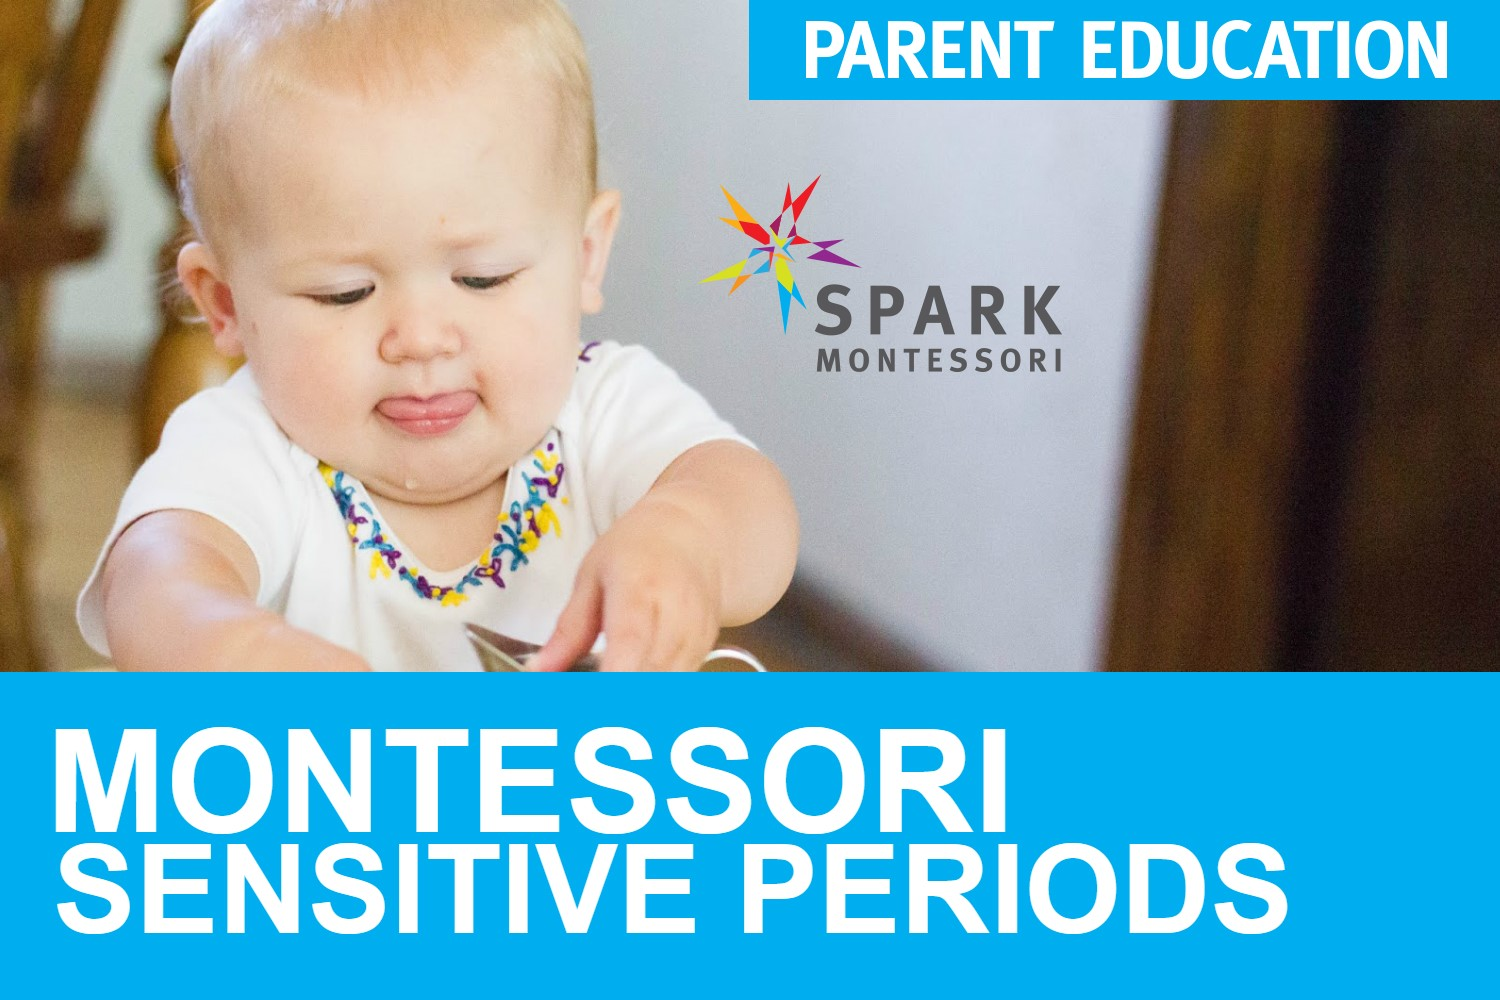 montessori for infants and toddlers 0 3 years old sensitive periods We understand that young children go through sensitive periods in terms of  development generally, these periods include: birth - old age: language birth -  3 years: sensory experiences & learning through movement 15 - 3 years: oral   infants toddlers pre-primary primary elementary outdoor classroom events.